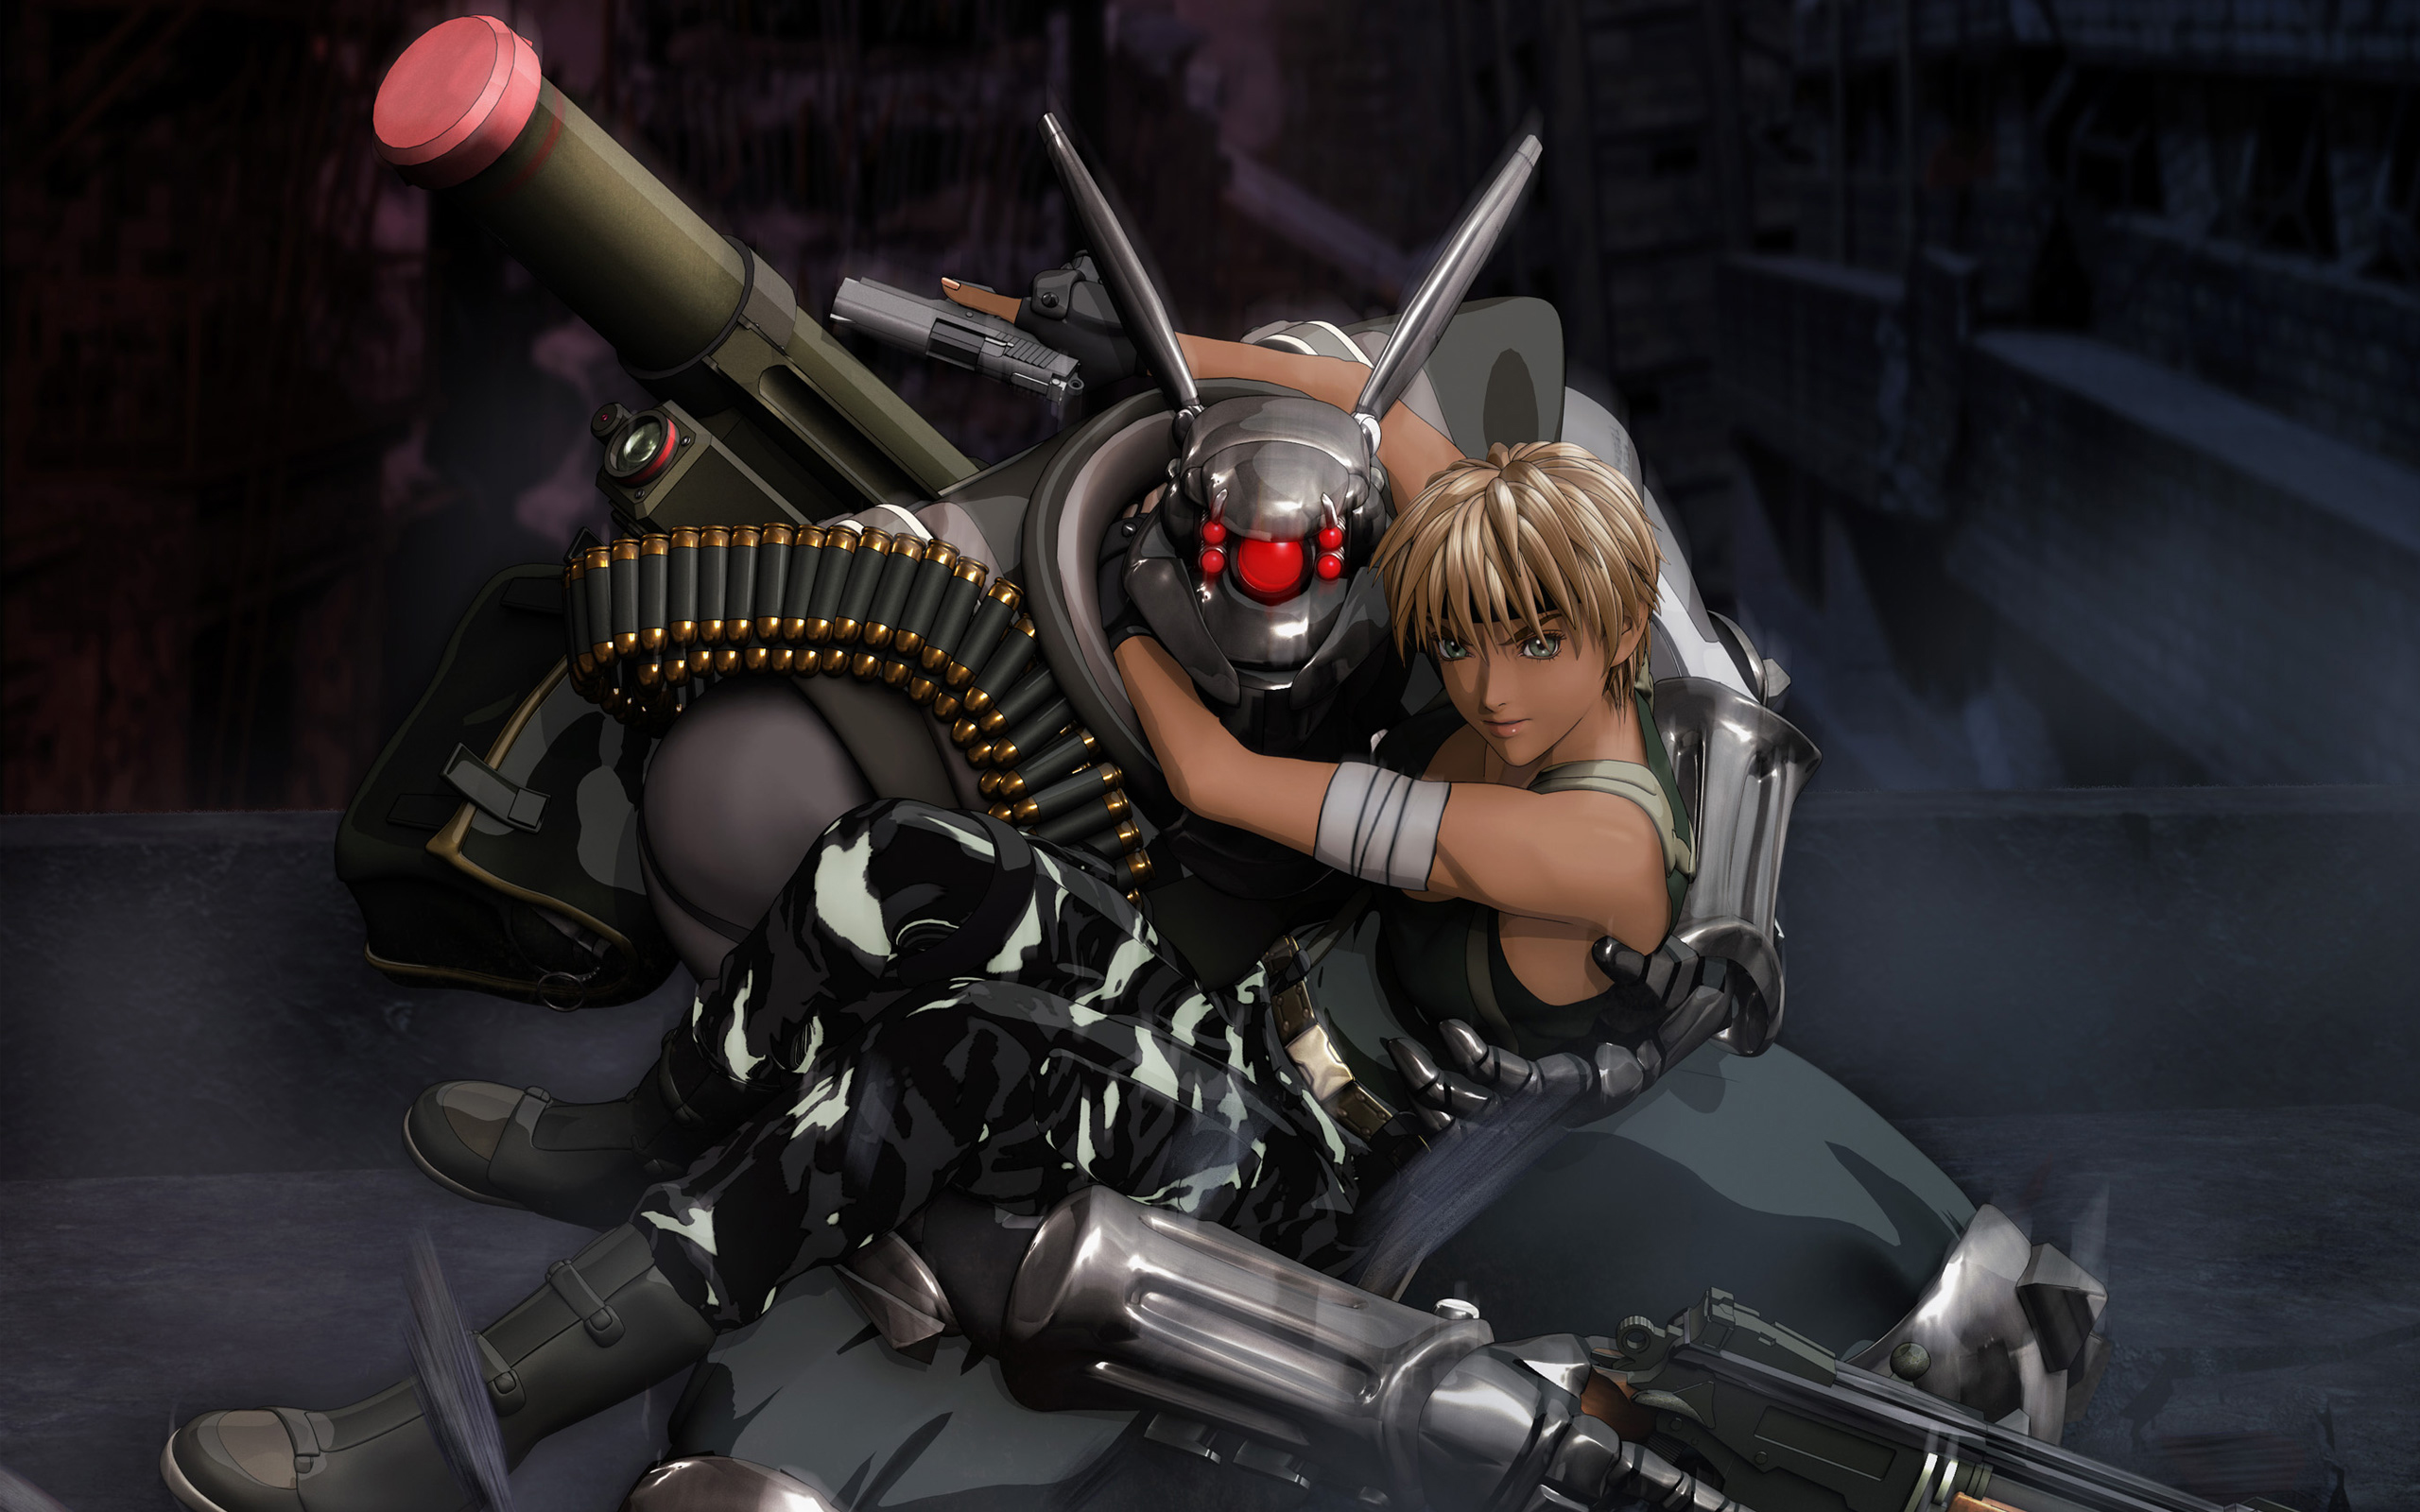 Appleseed Hd Wallpaper  Background Image  2560X1600  Id205100 - Wallpaper Abyss-9161